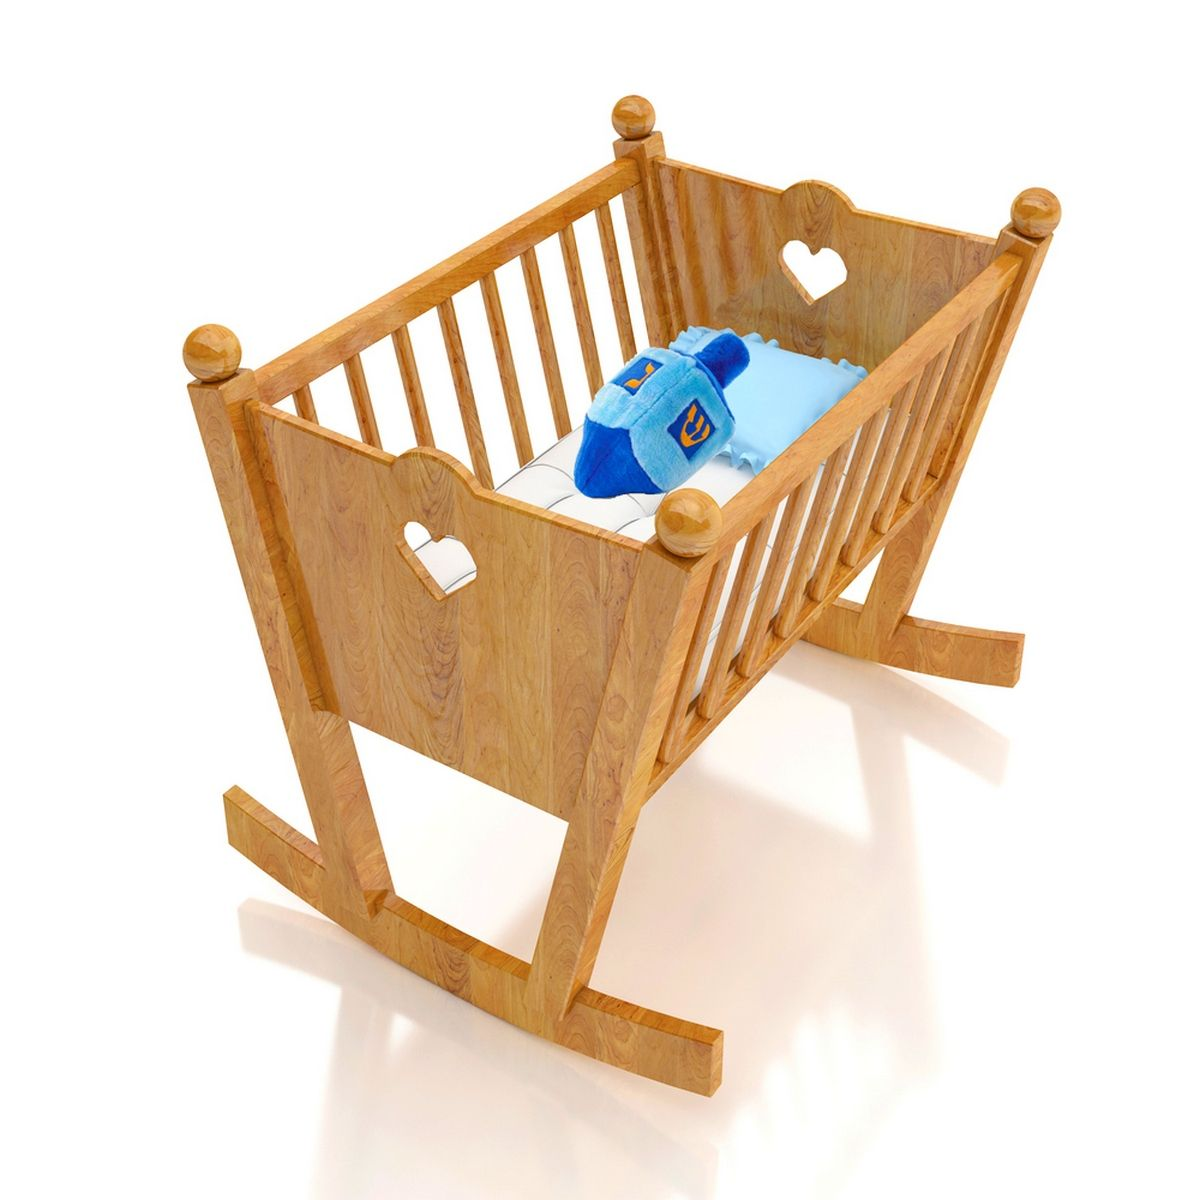 Original Wooden Baby Cribs Wooden baby crib, Wooden